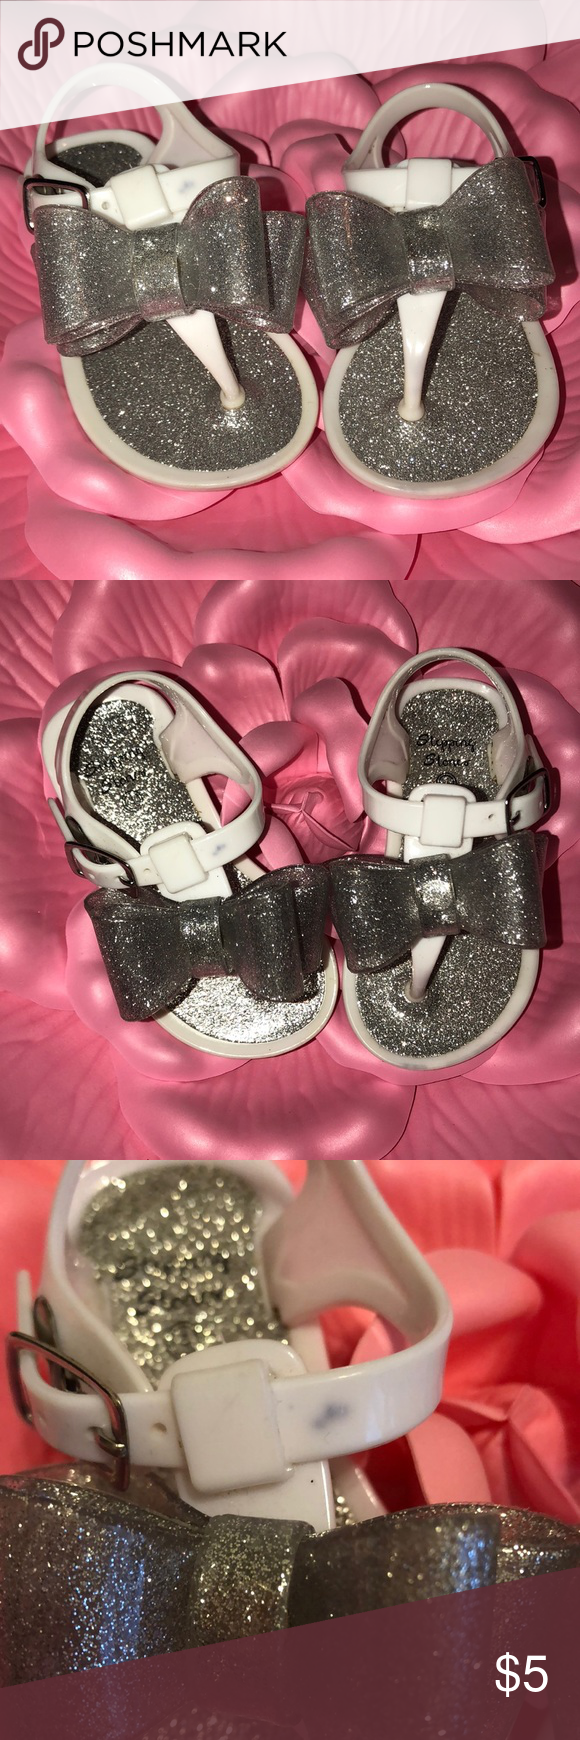 ffd2ca06ded2 Toddler girls glitter jelly sandals size 4 Still in great condition! Small  stain on top of right sandal (see pic) The Children s Place Shoes Sandals    Flip ...